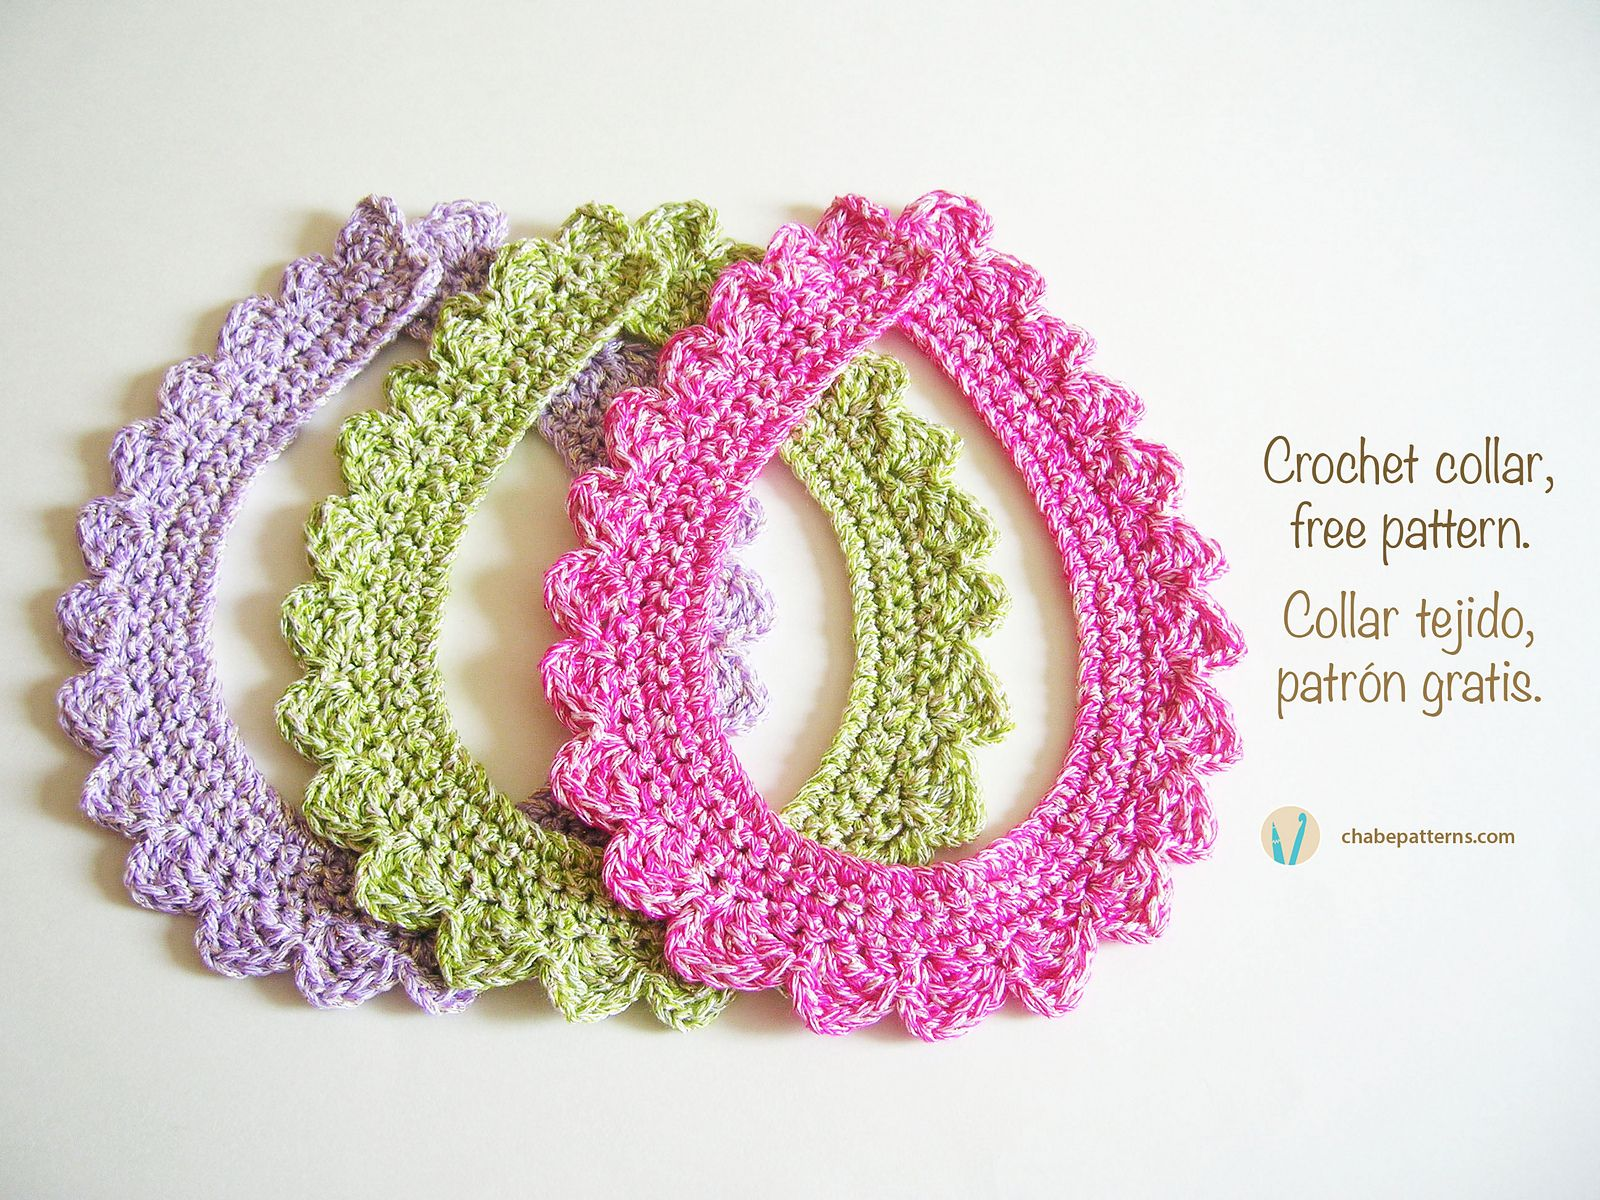 Crochet Collar By ChabeGS - Free Crochet Pattern - (chabepatterns ...